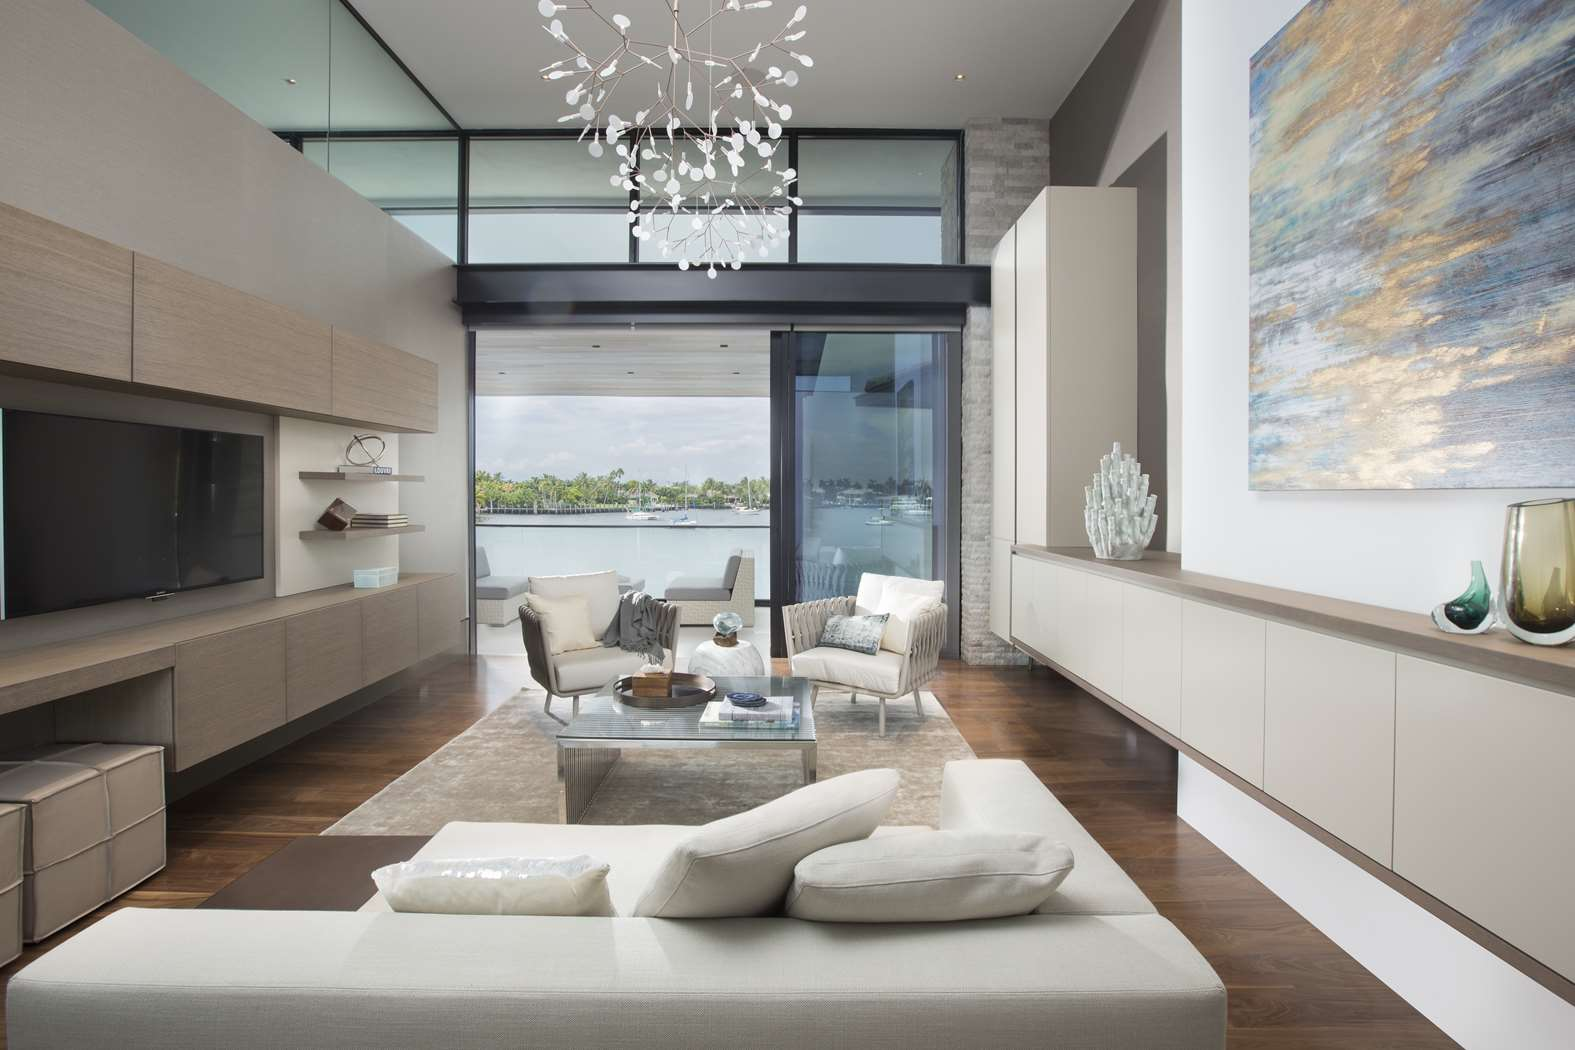 Design Interieur Contemporary Waterfront Elegance Residential Interior